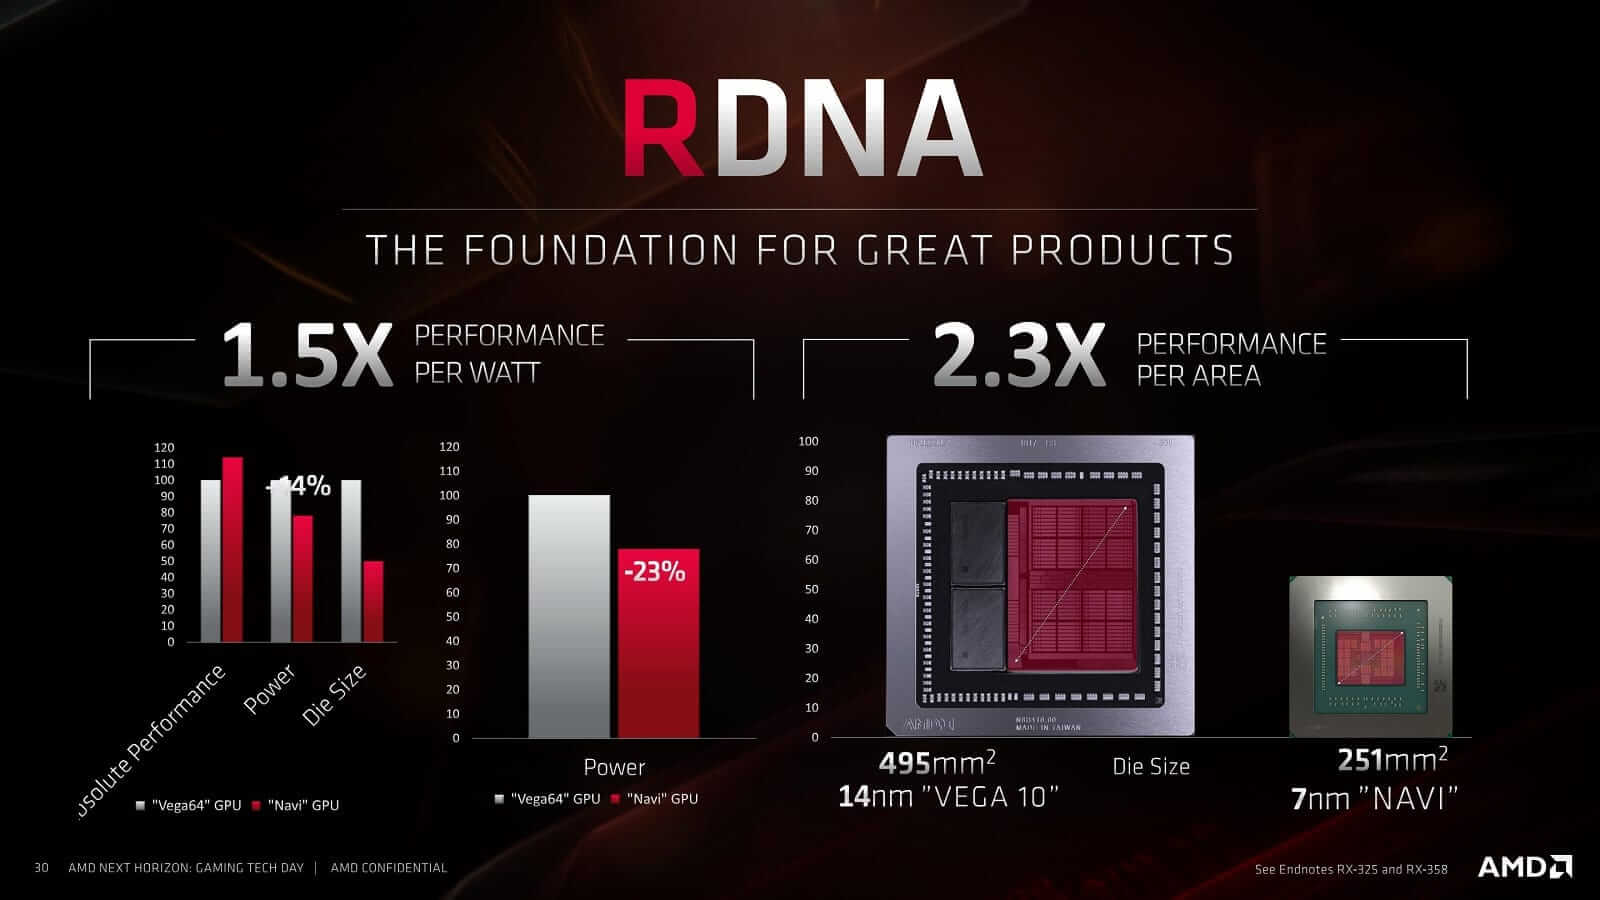 RDNA Performance per Watt and Area